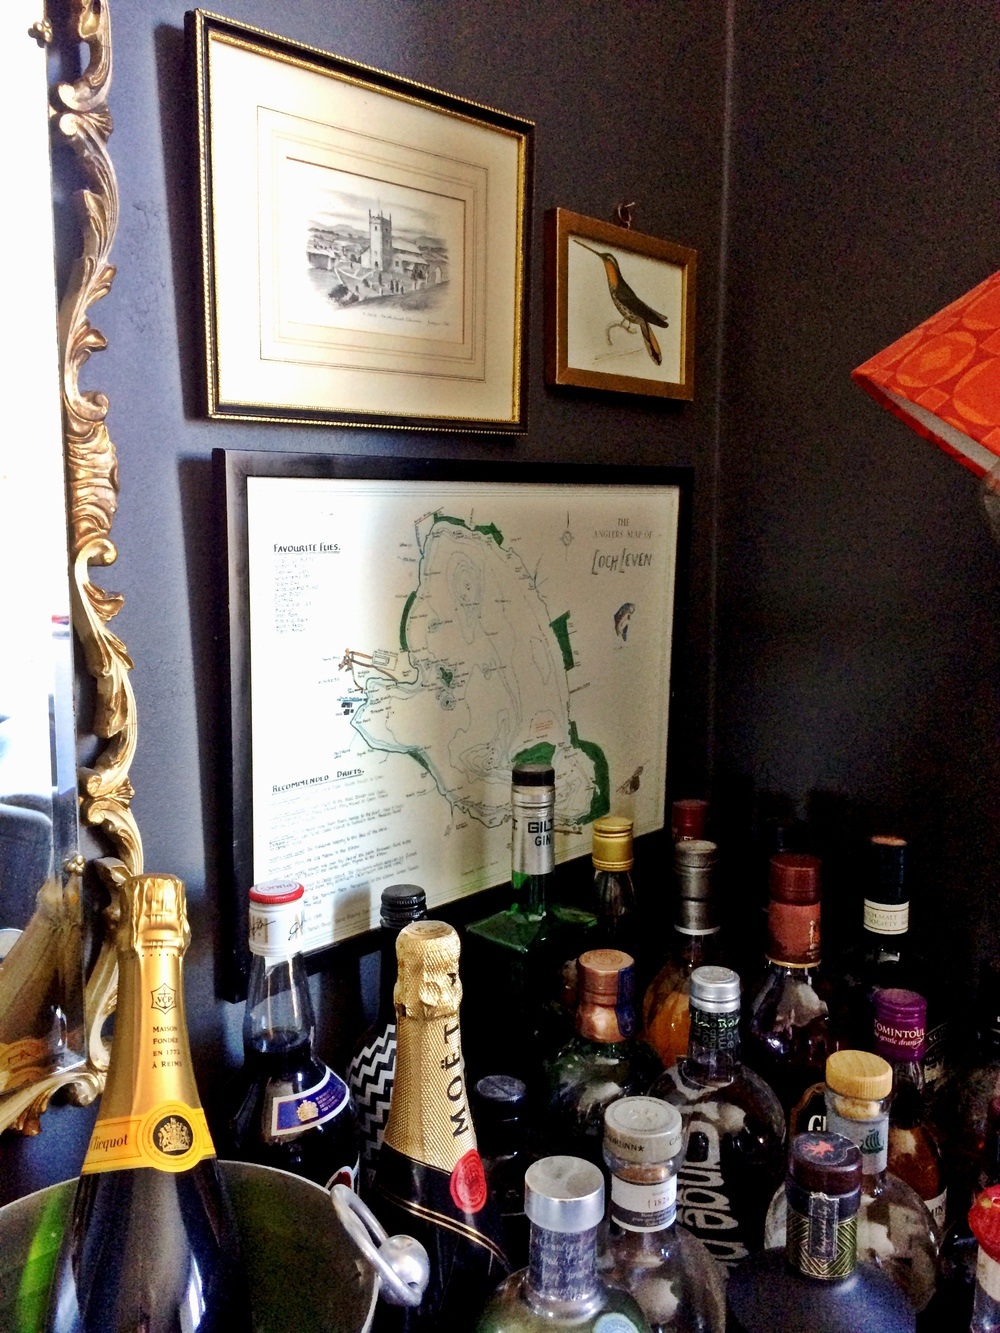 Home / apartment decor; wine; champagne; liquor bottle; map; frame; mirror | Remodeled by Deborah Peterson Milne